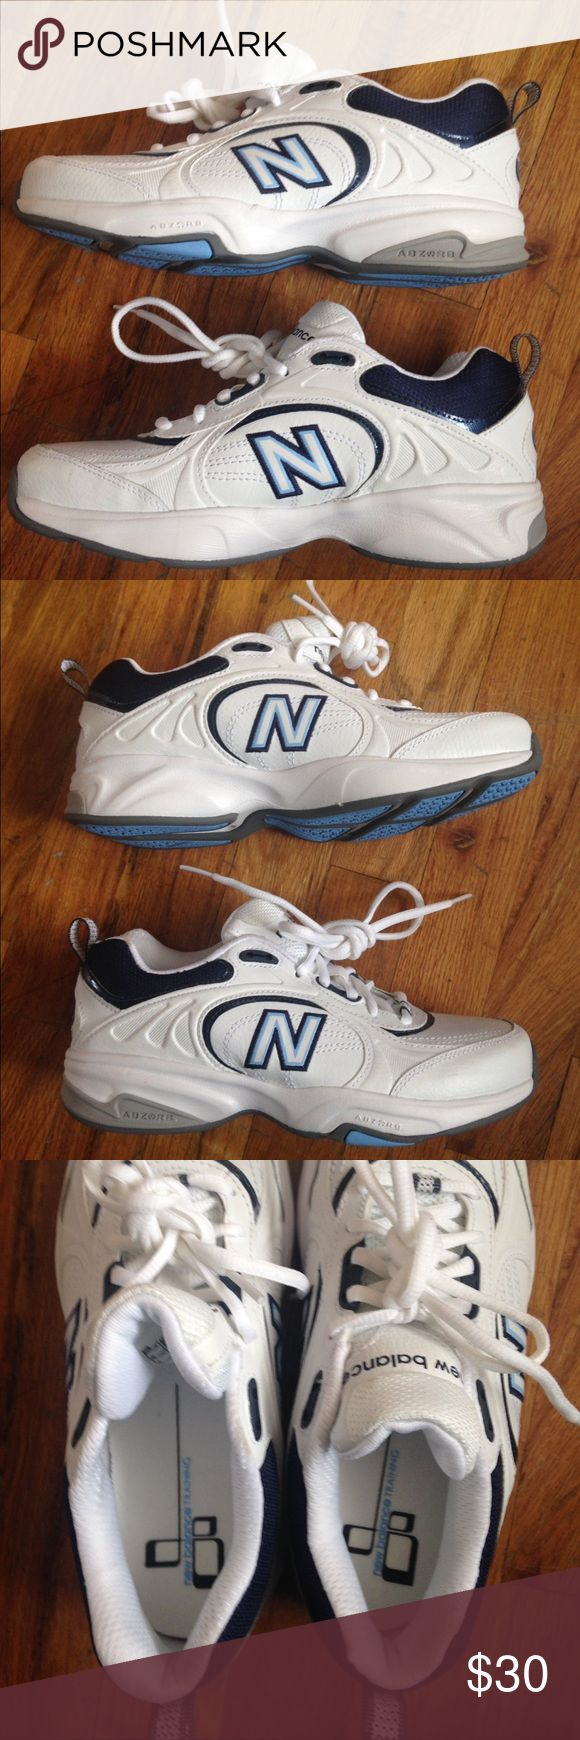 Women's New Balance WX623WB tennis shoes 6- EUC Never been worn outside. Blue/white. Women's size 6. New Balance Shoes Sneakers